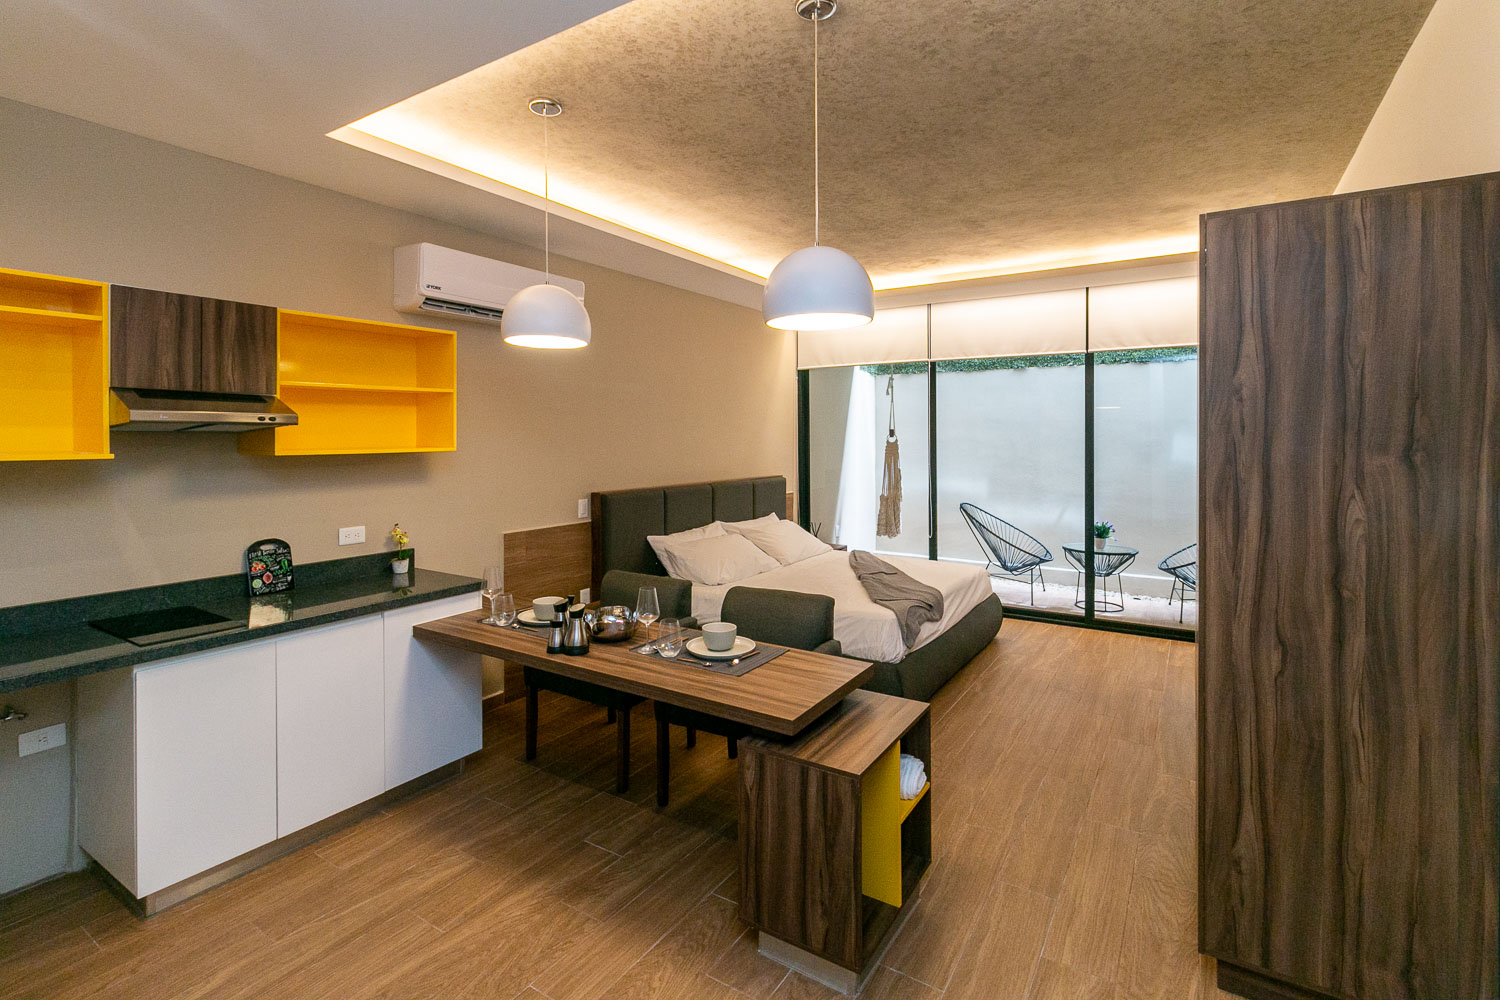 The Yellow - Modern Studios with Remarkable Location in Playa